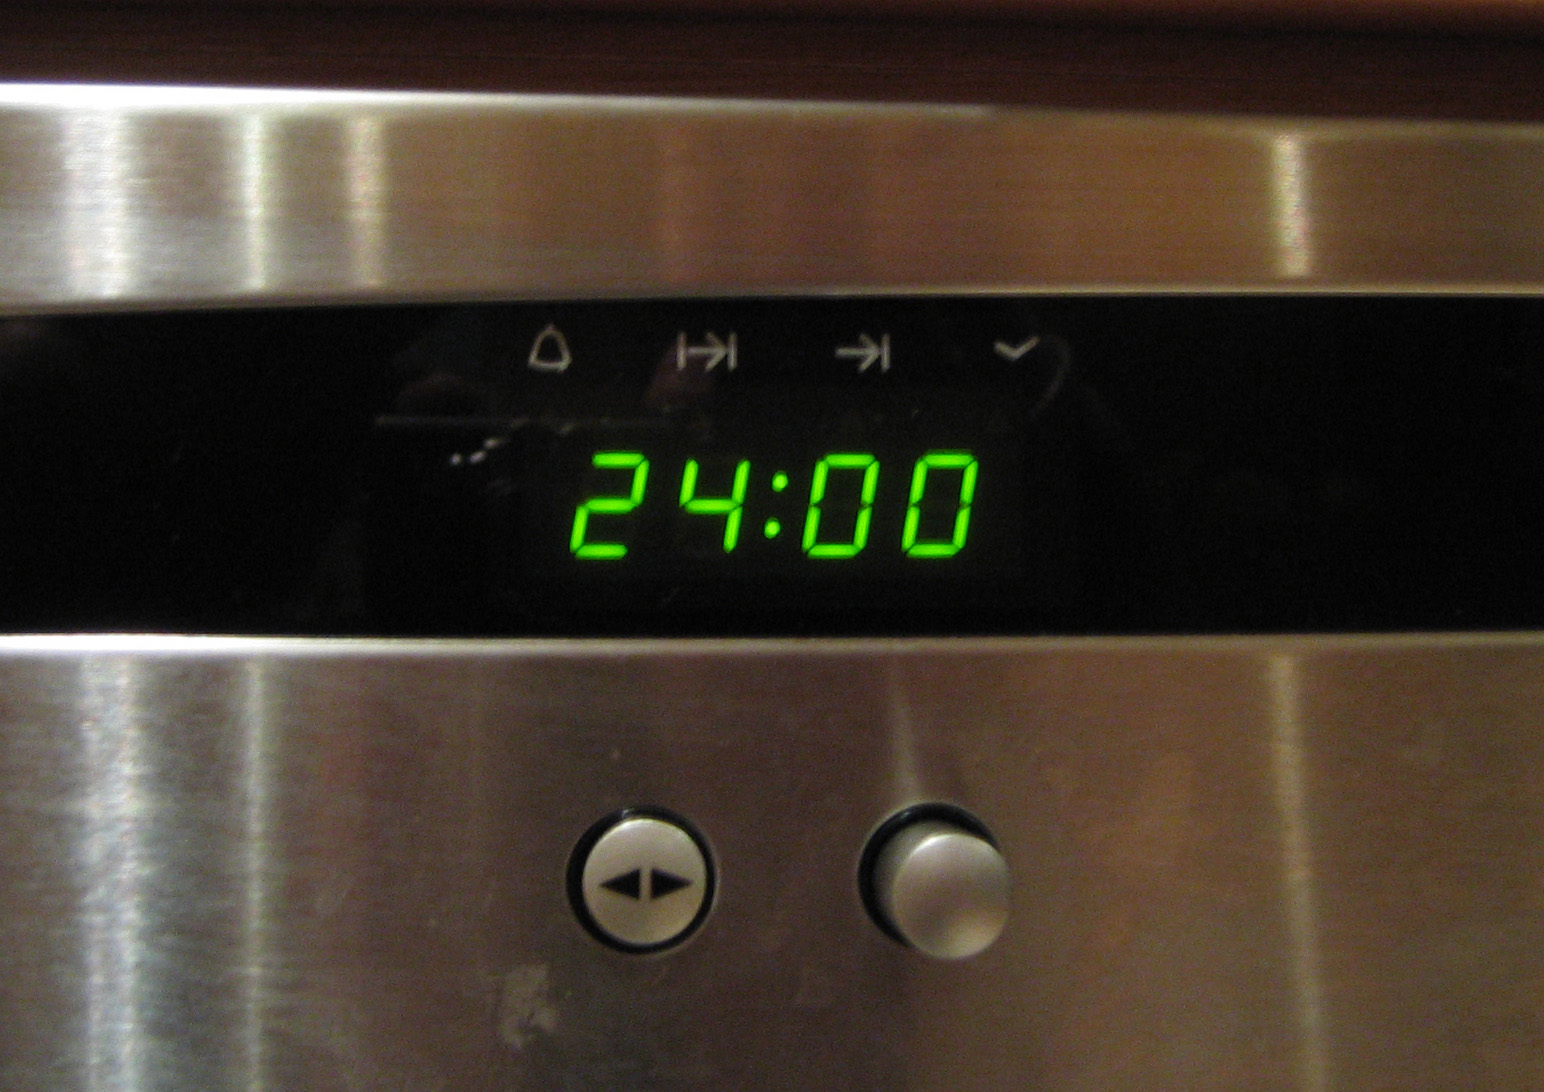 File:Clock showing 24 00.JPG